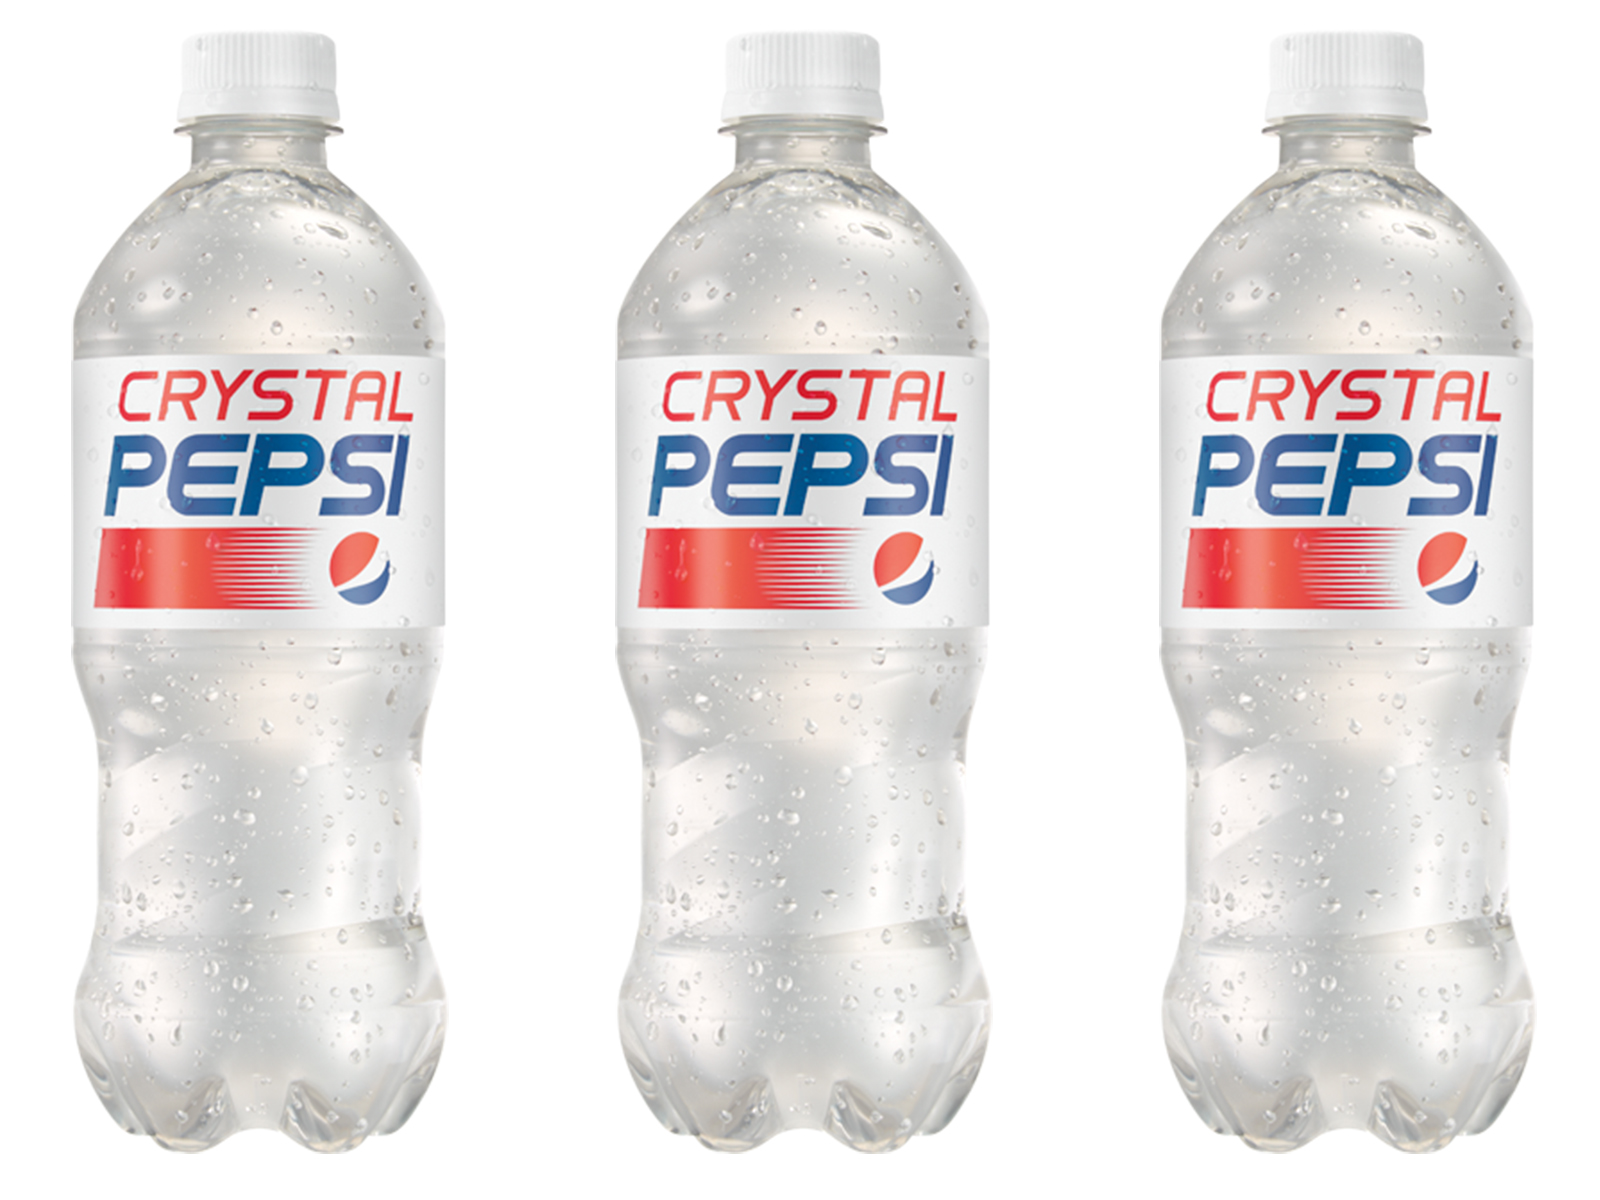 Crystal Pepsi Is Back on Store Shelves